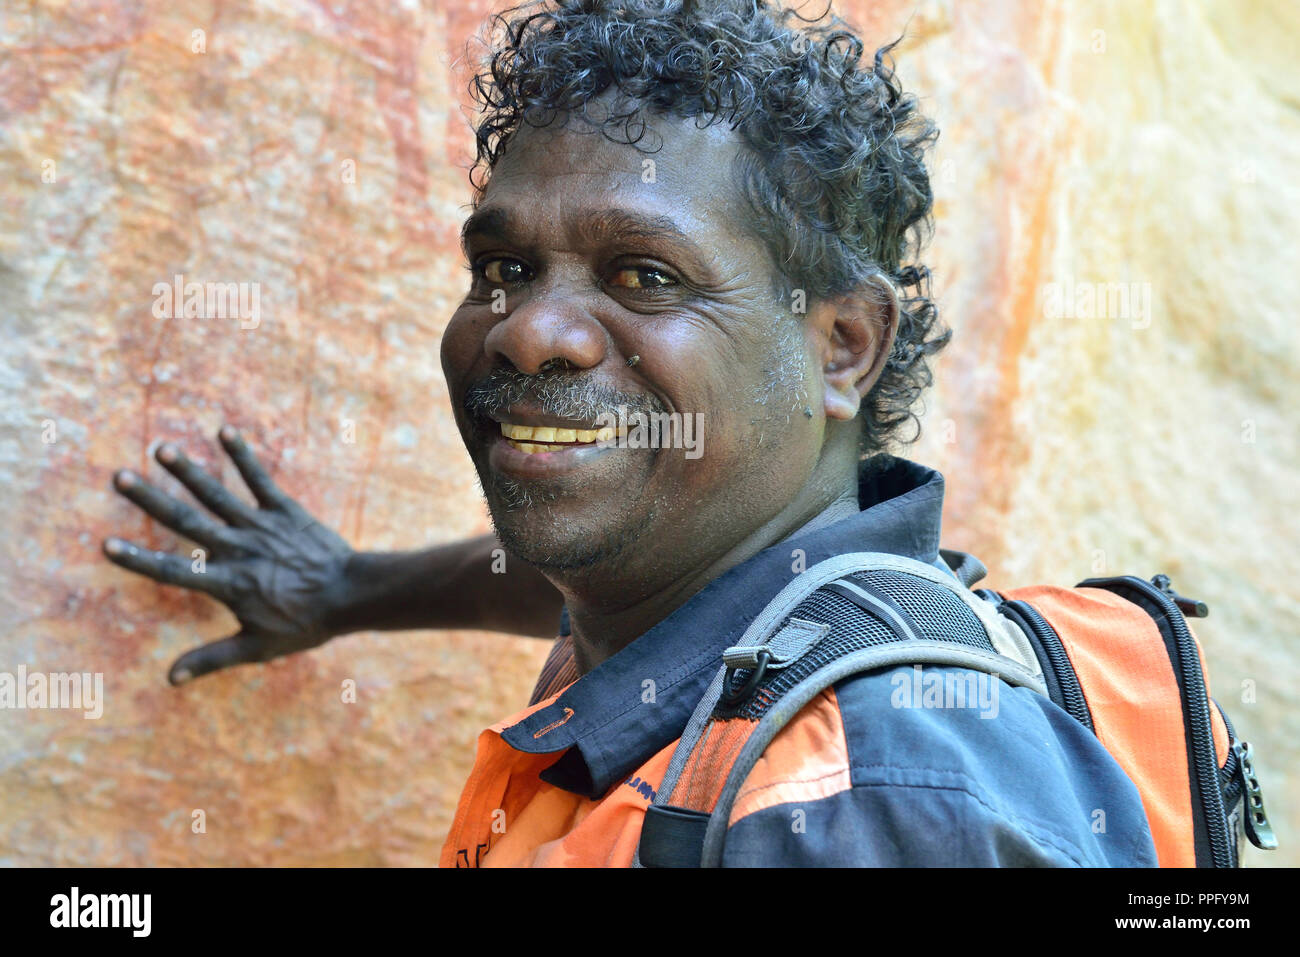 Aboriginal guide pointing out artwork in a rock art gallery on Injalak Hill, Arnhem Land, Northern Territory, Australia Stock Photo